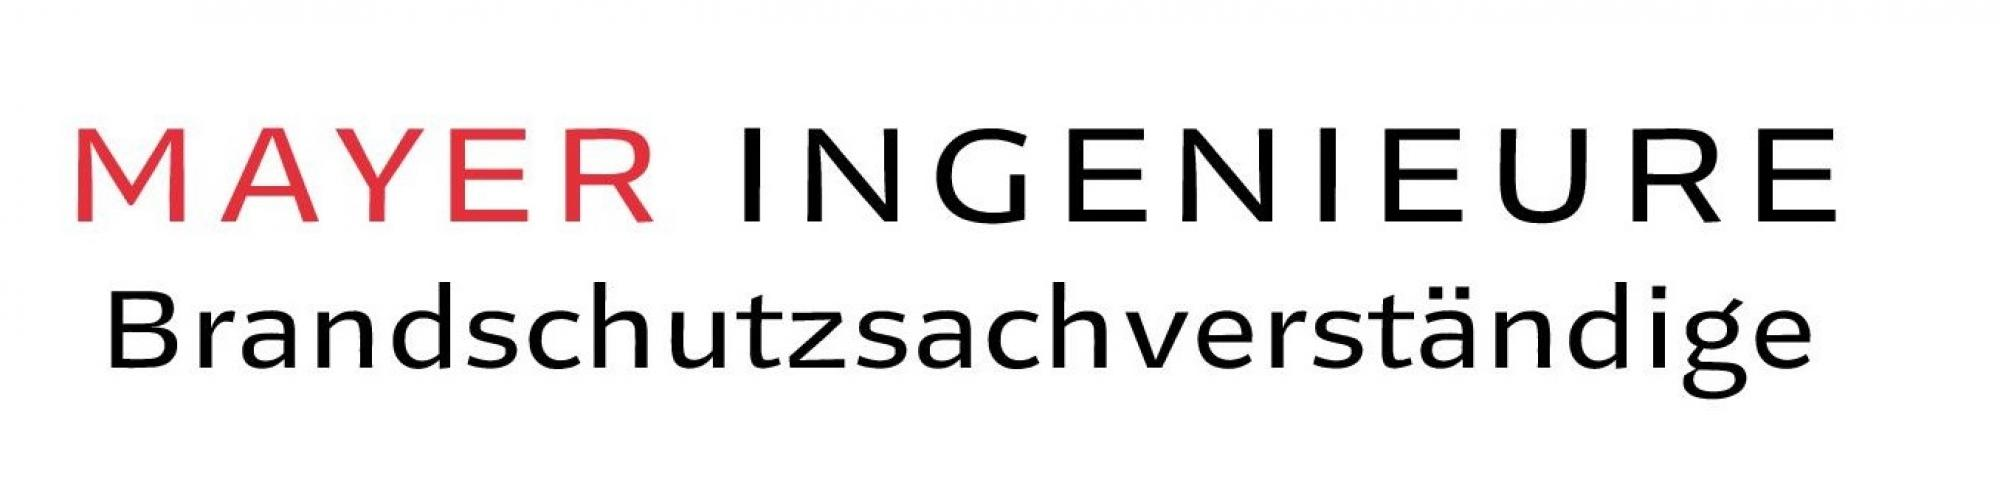 MAYER INGENIEURE GmbH & Co. KG